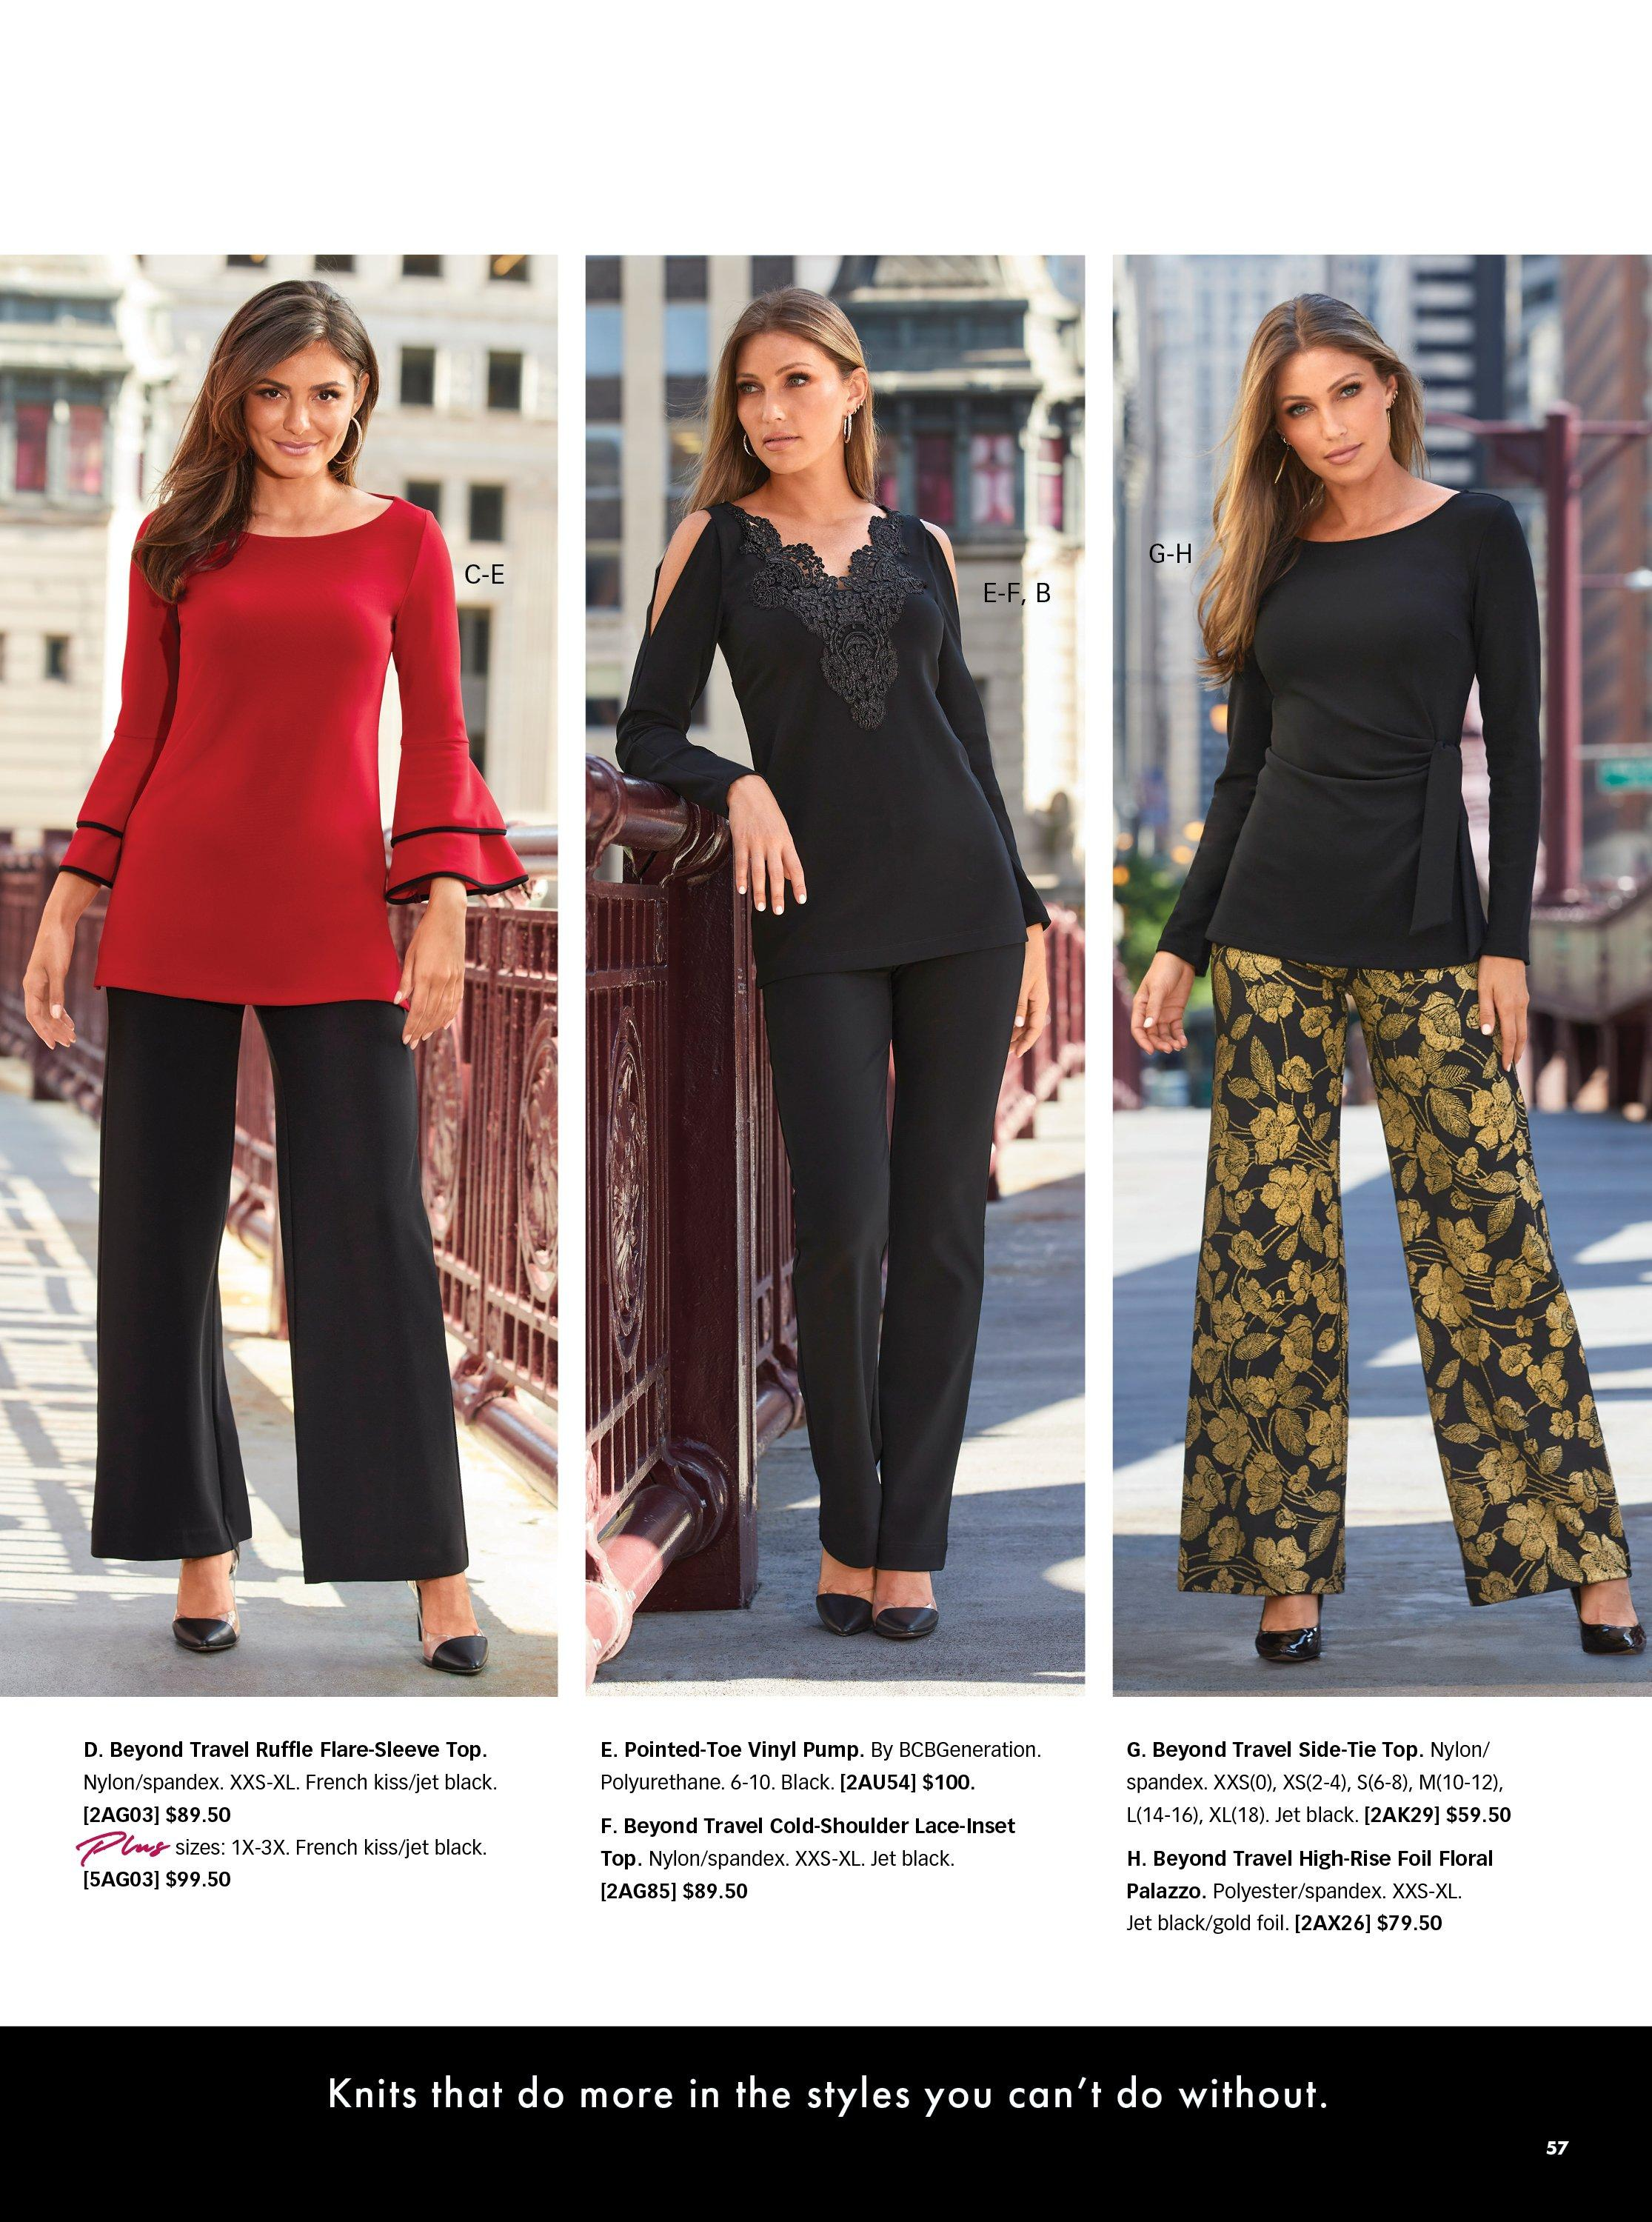 left model wearing a red and black ruffle flare sleeve top, black palazzo pants, and black vinyl heels. middle model wearing a black long-sleeve cold-shoulder lace top, black pants, and black vinyl heels. right model wearing a black side-tie long-sleeve top, black palazzo pants with yellow flowers, and black pumps.